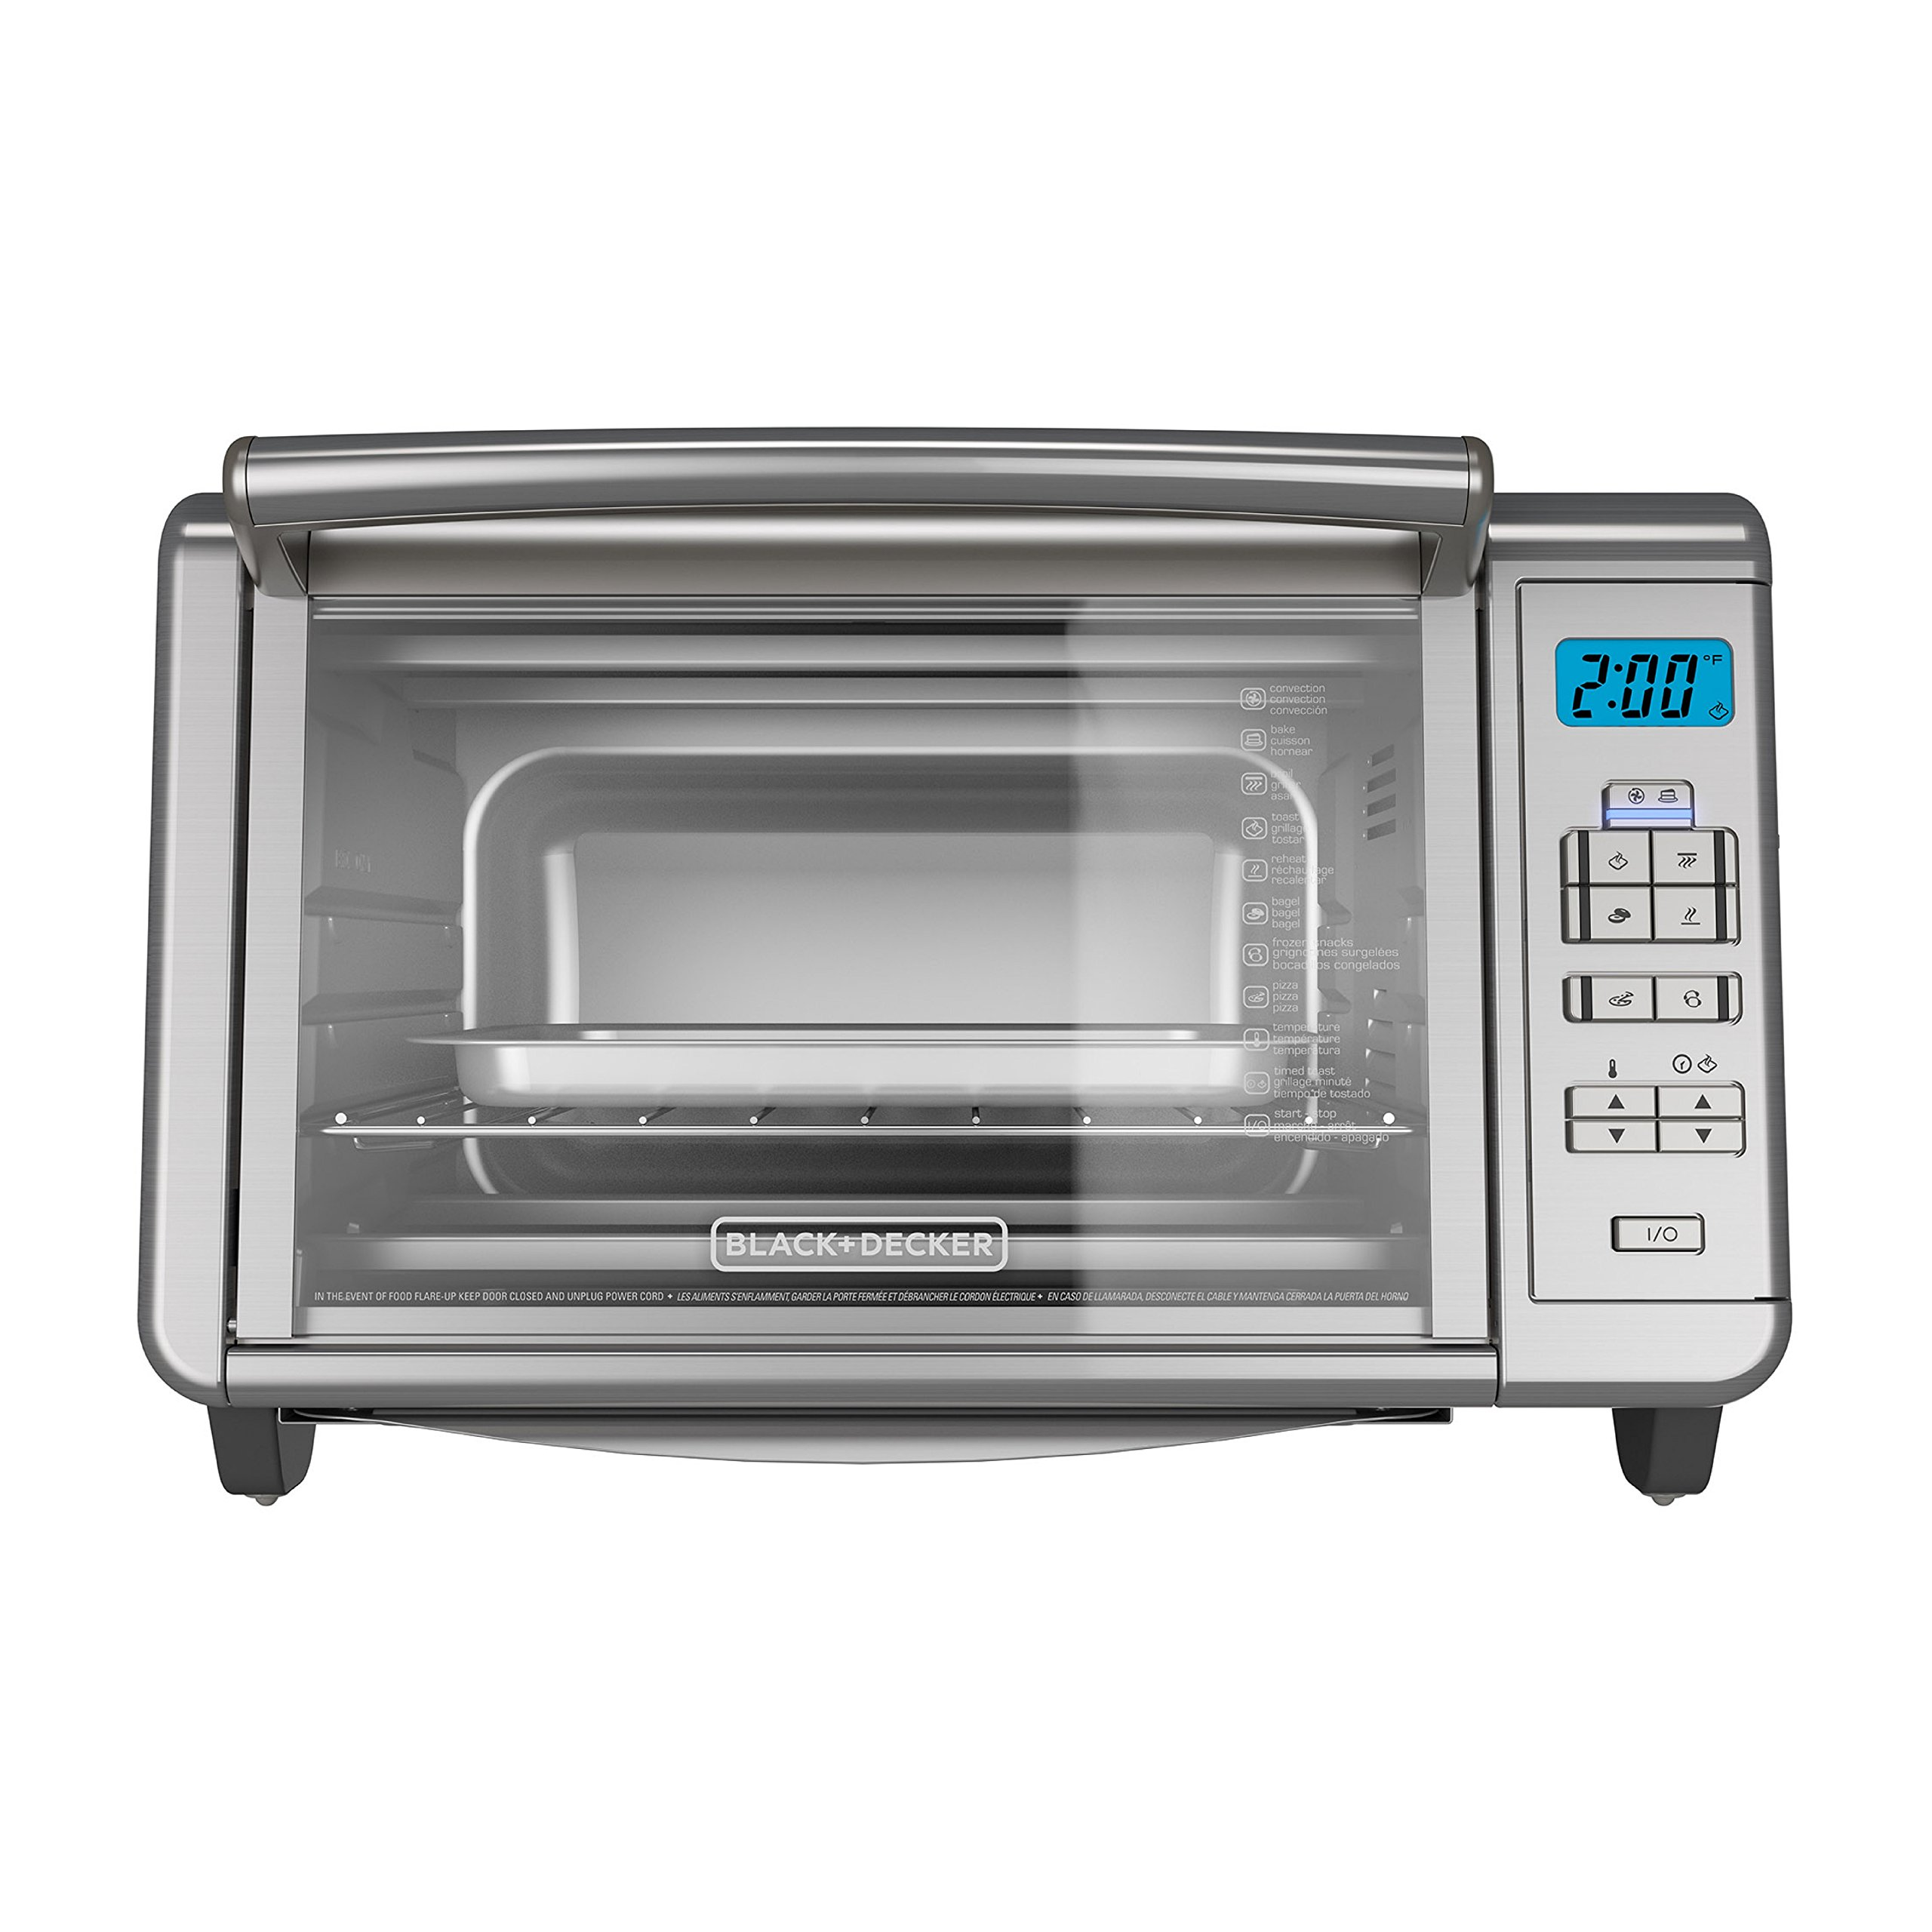 BLACK+DECKER 6-Slice Digital Convection Countertop Toaster Oven, Stainless Steel, TO3280SSD by BLACK+DECKER (Image #8)